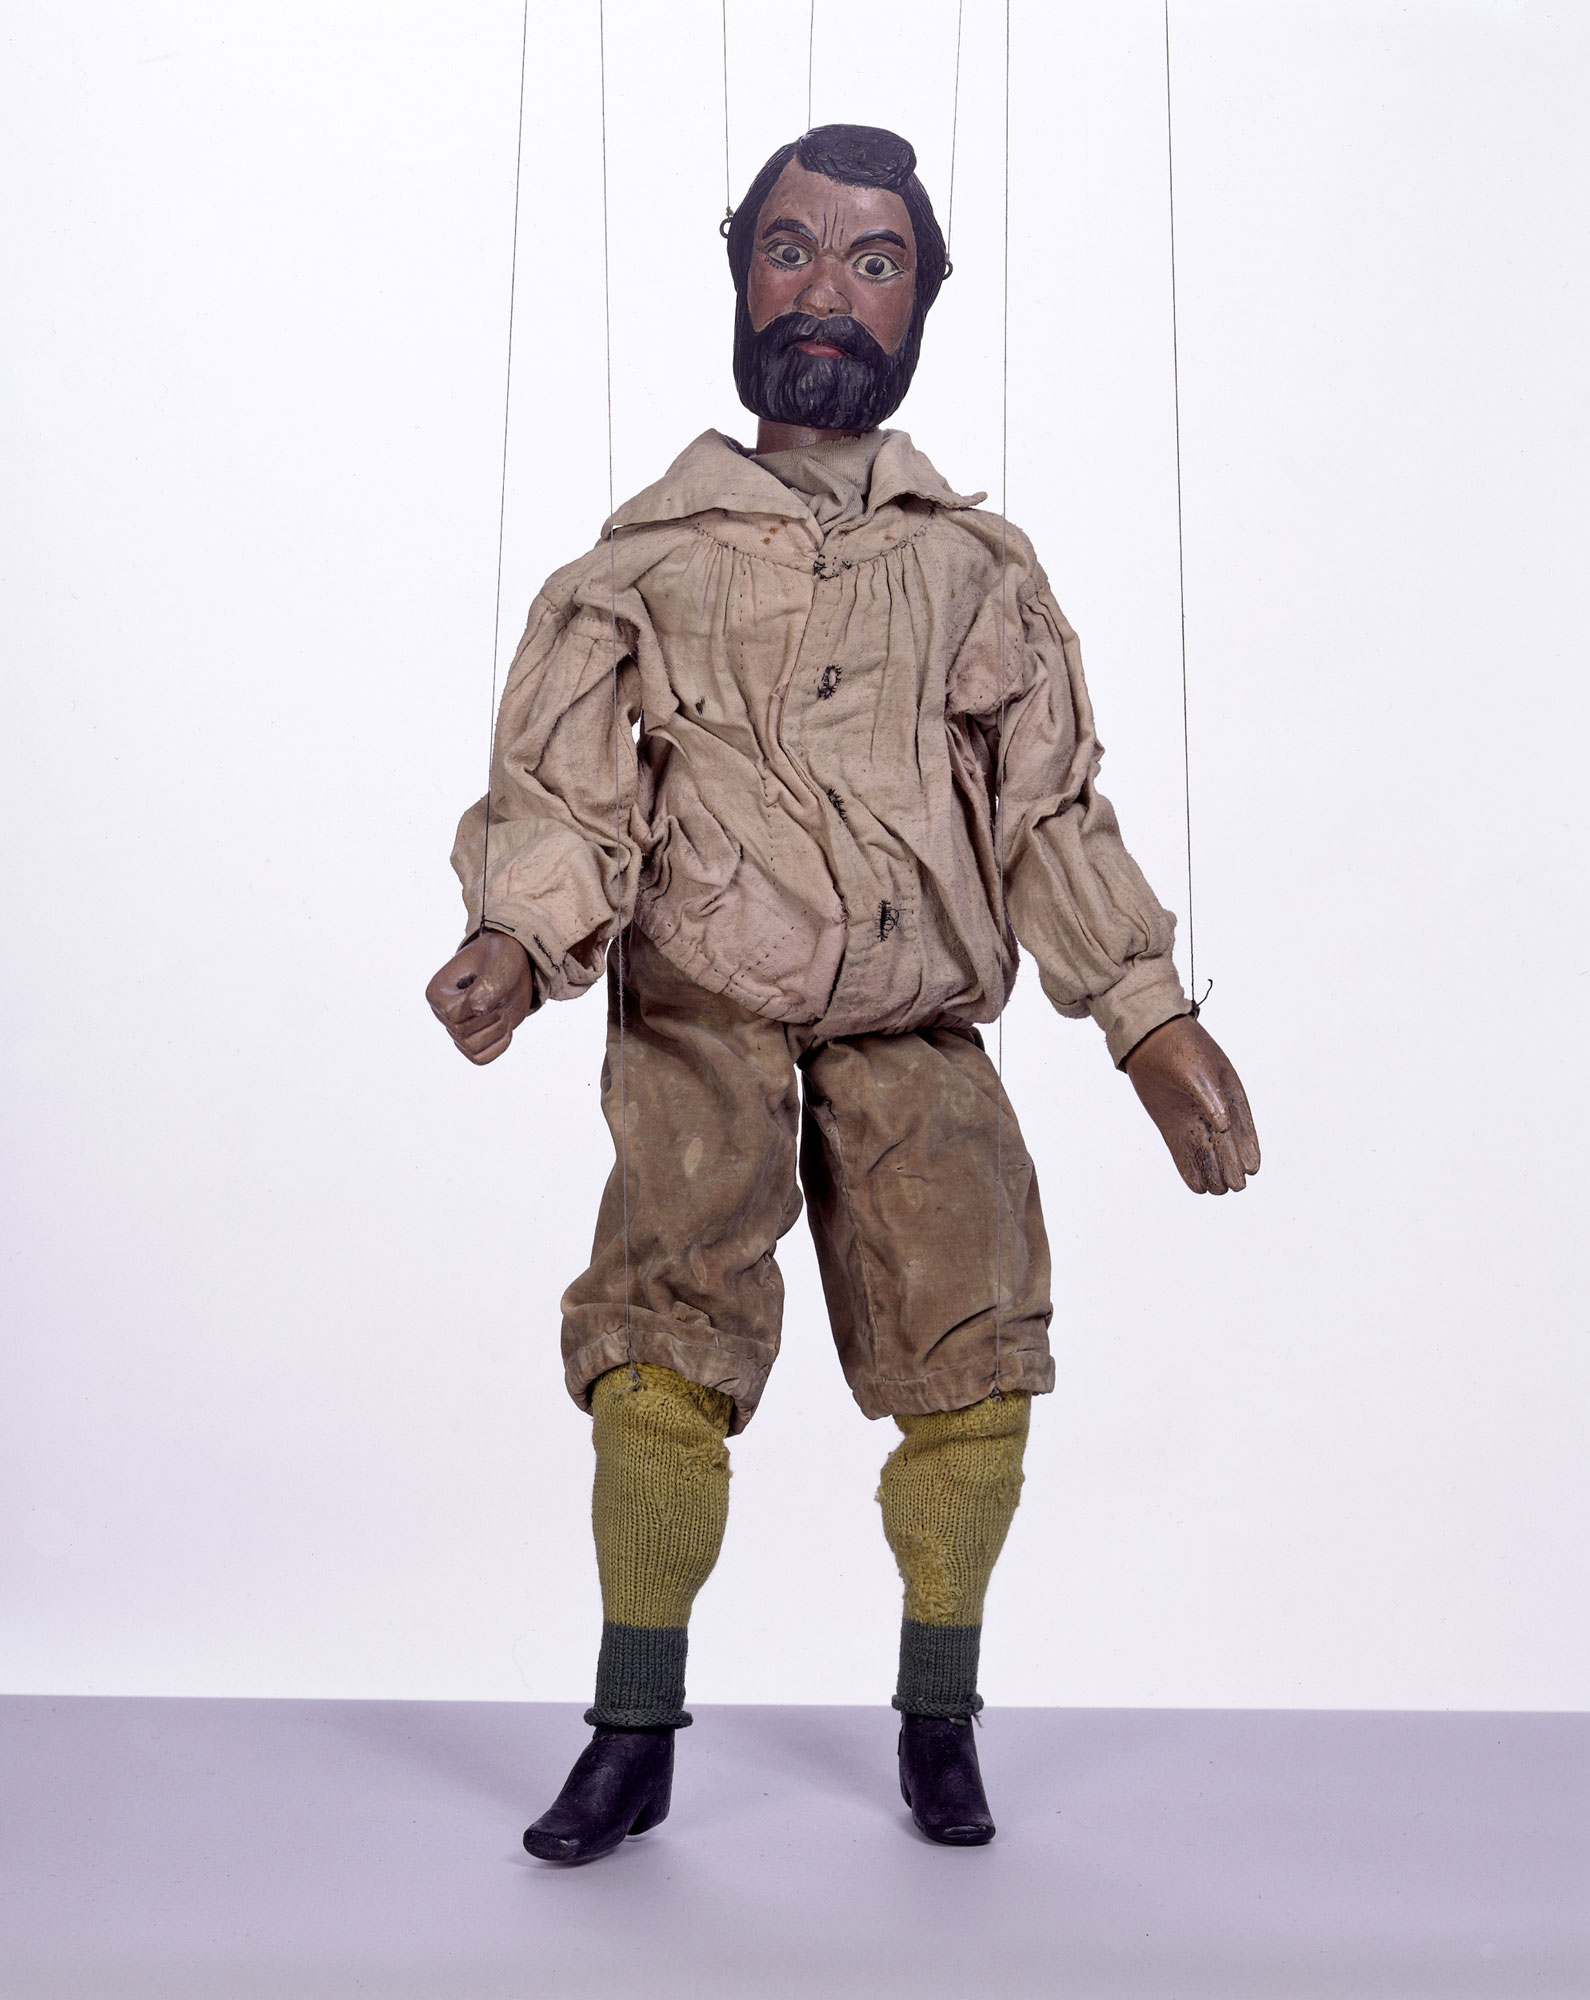 Victorian marionette from the Tiller-Clowes troupe